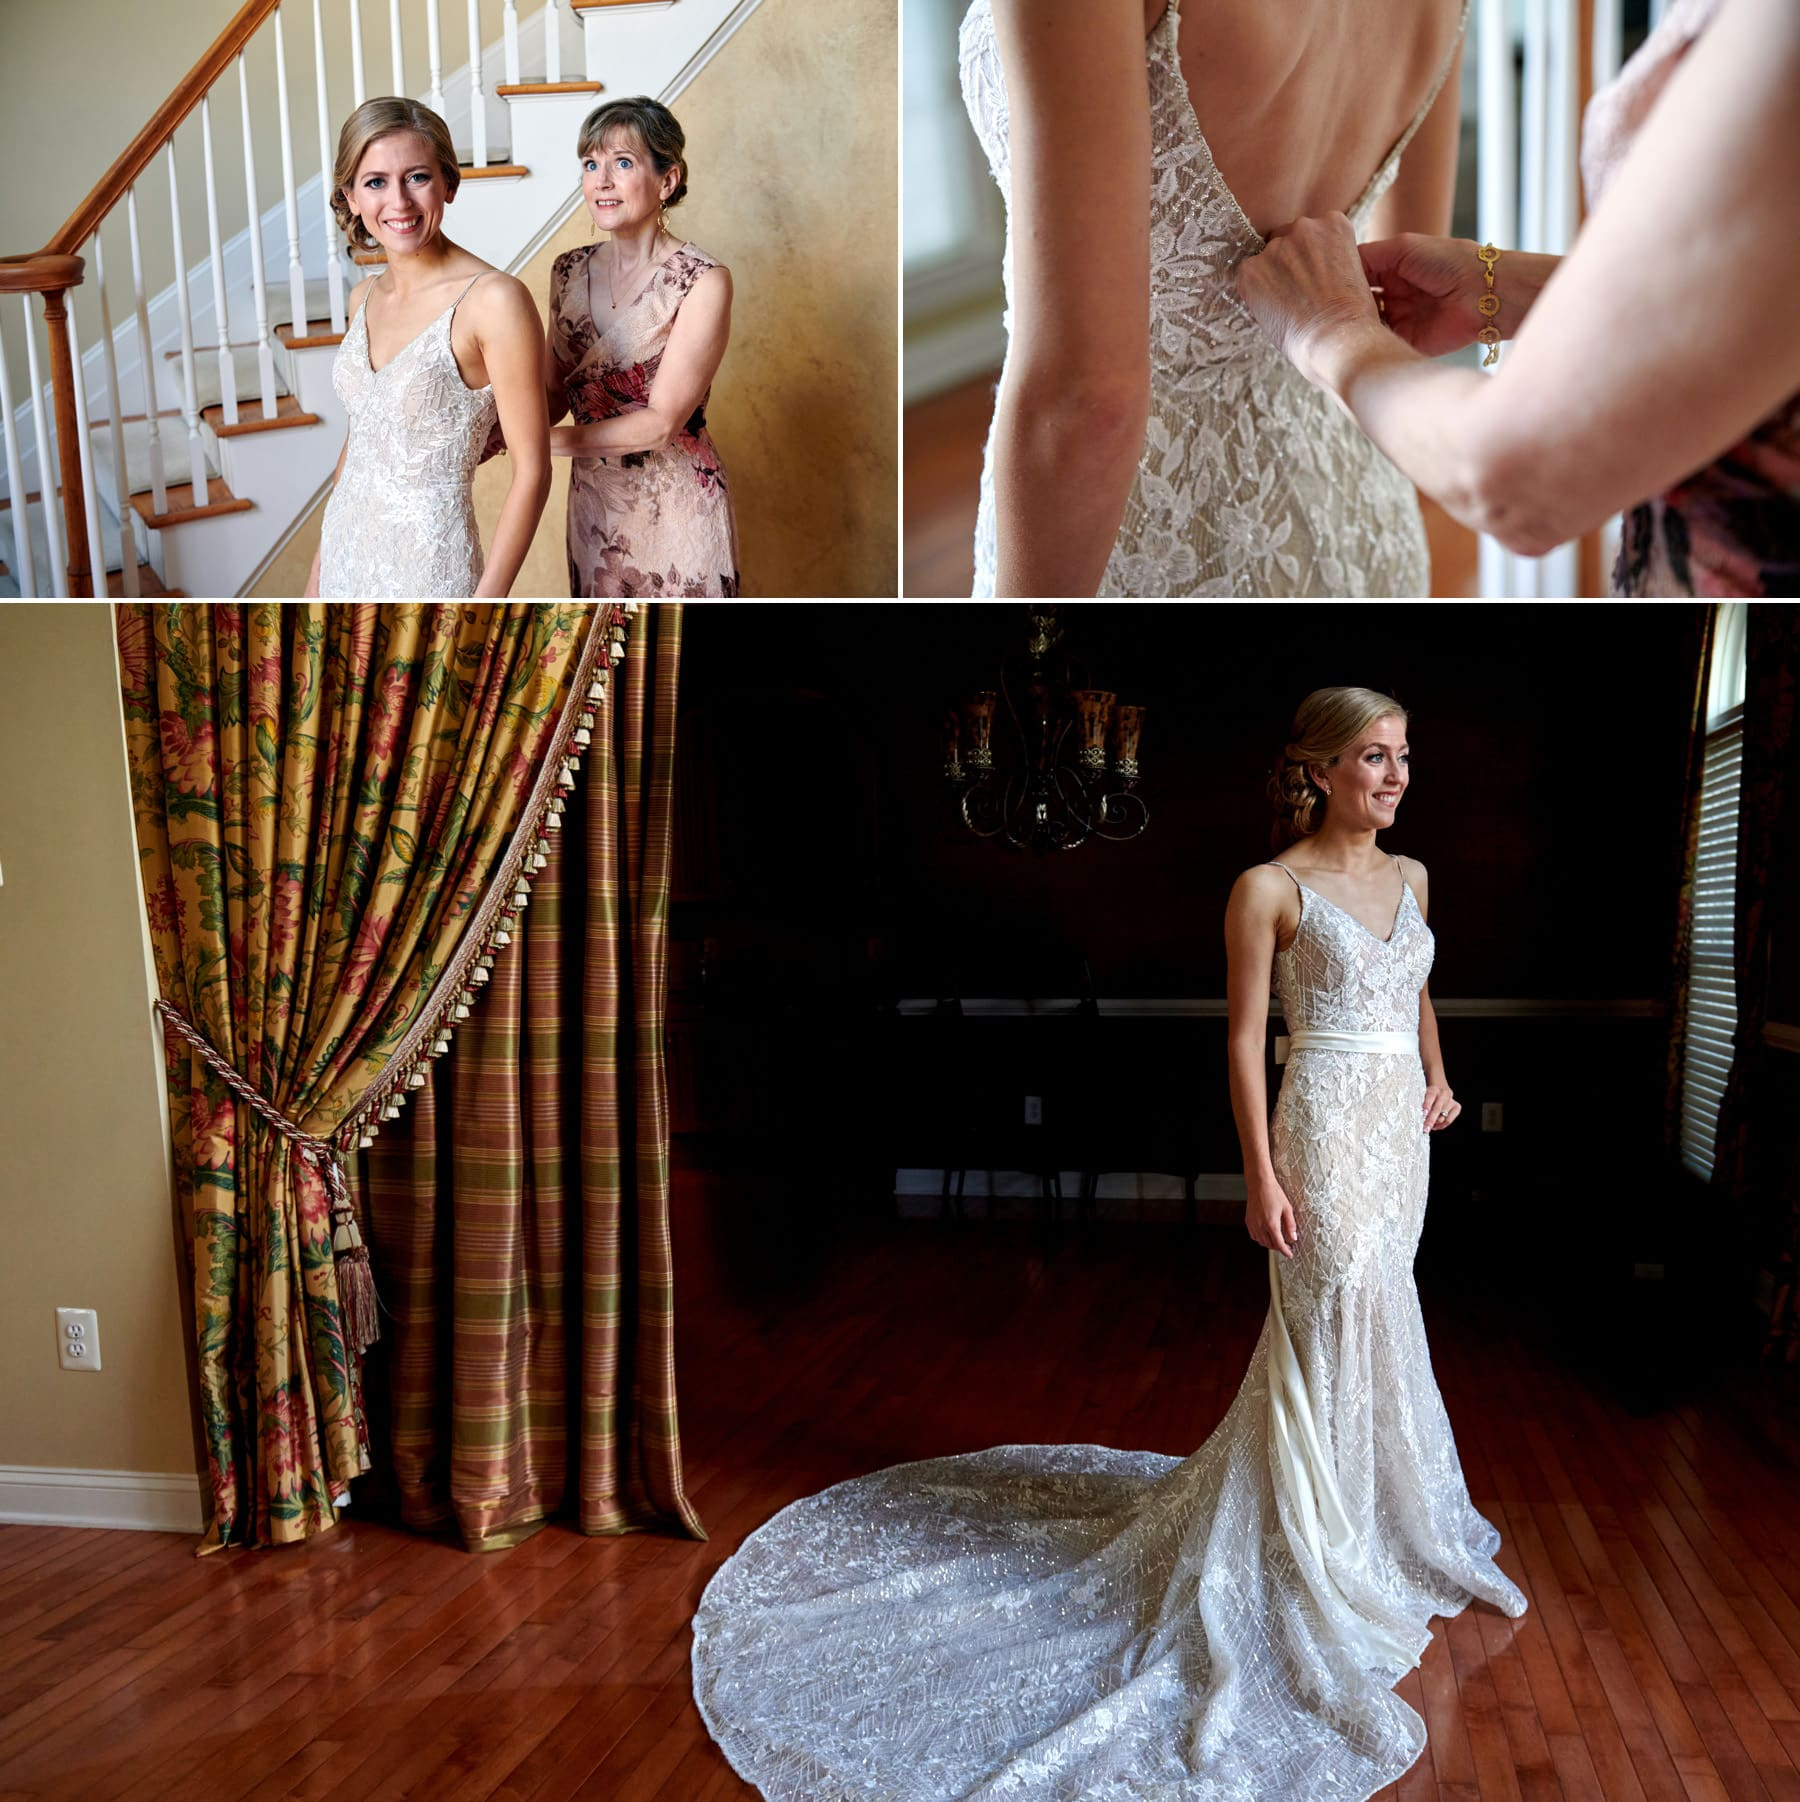 Bride getting ready at home photo